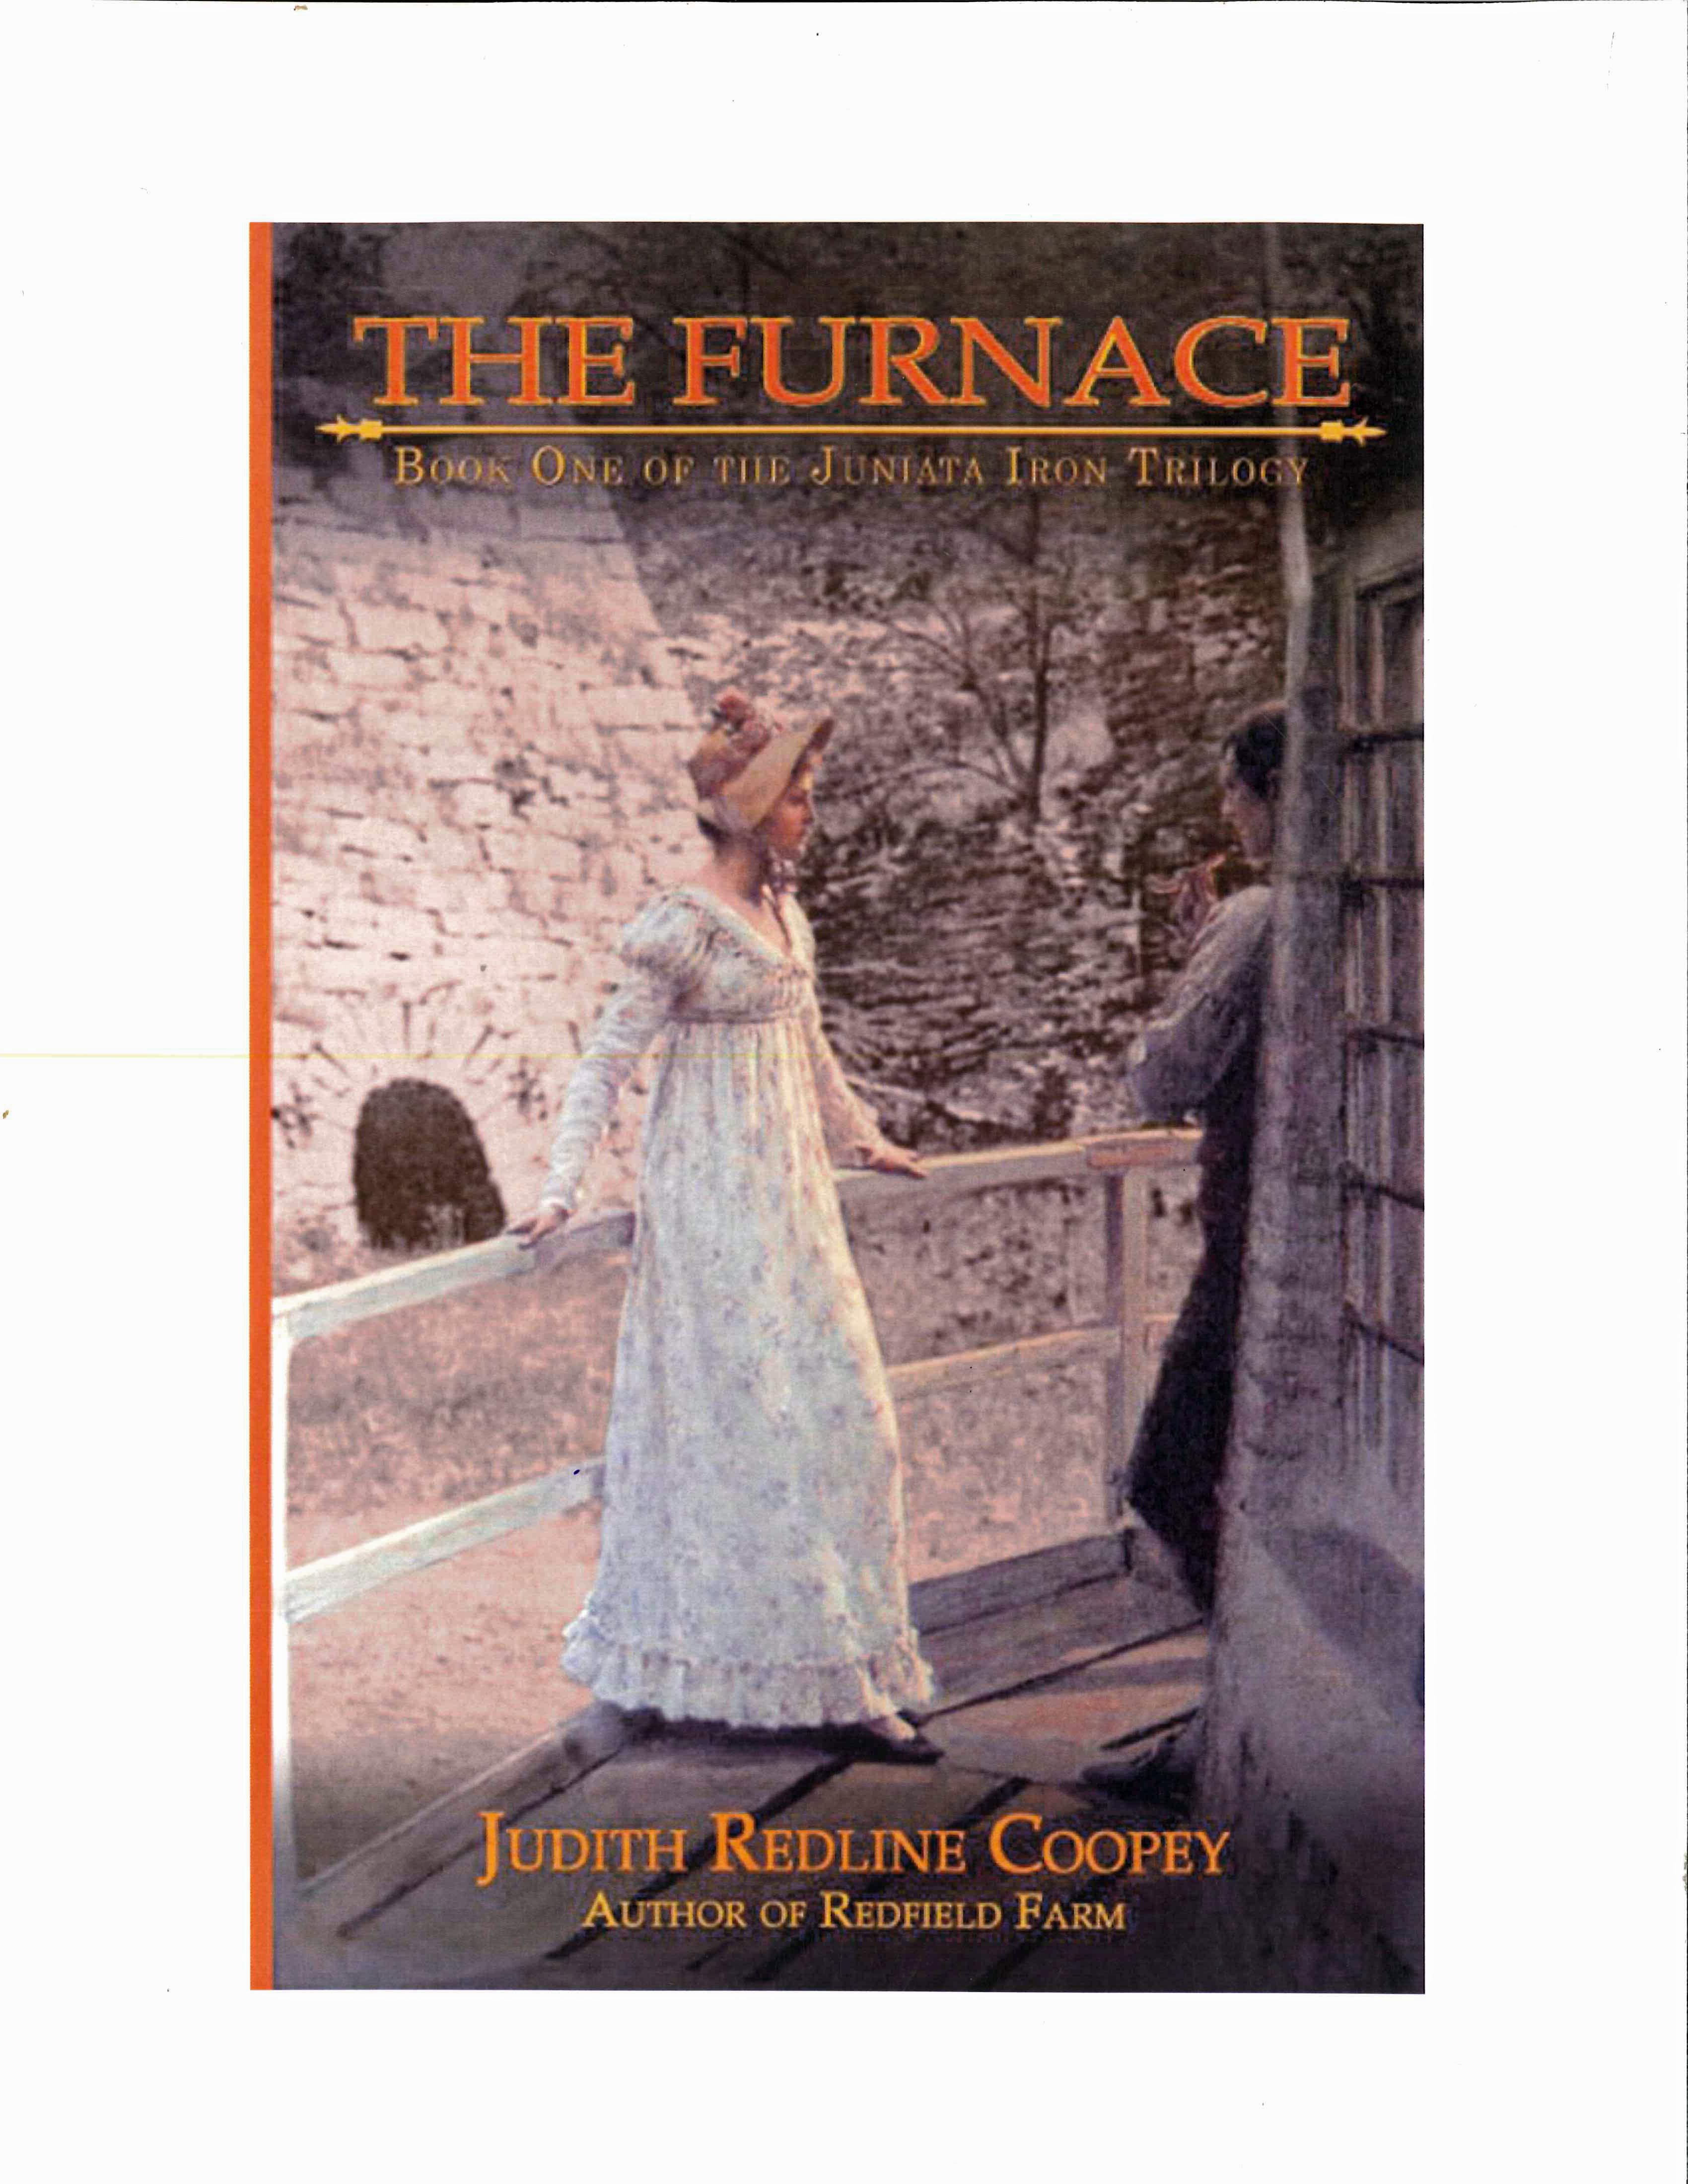 The Furnace by Judith Redline Coopey